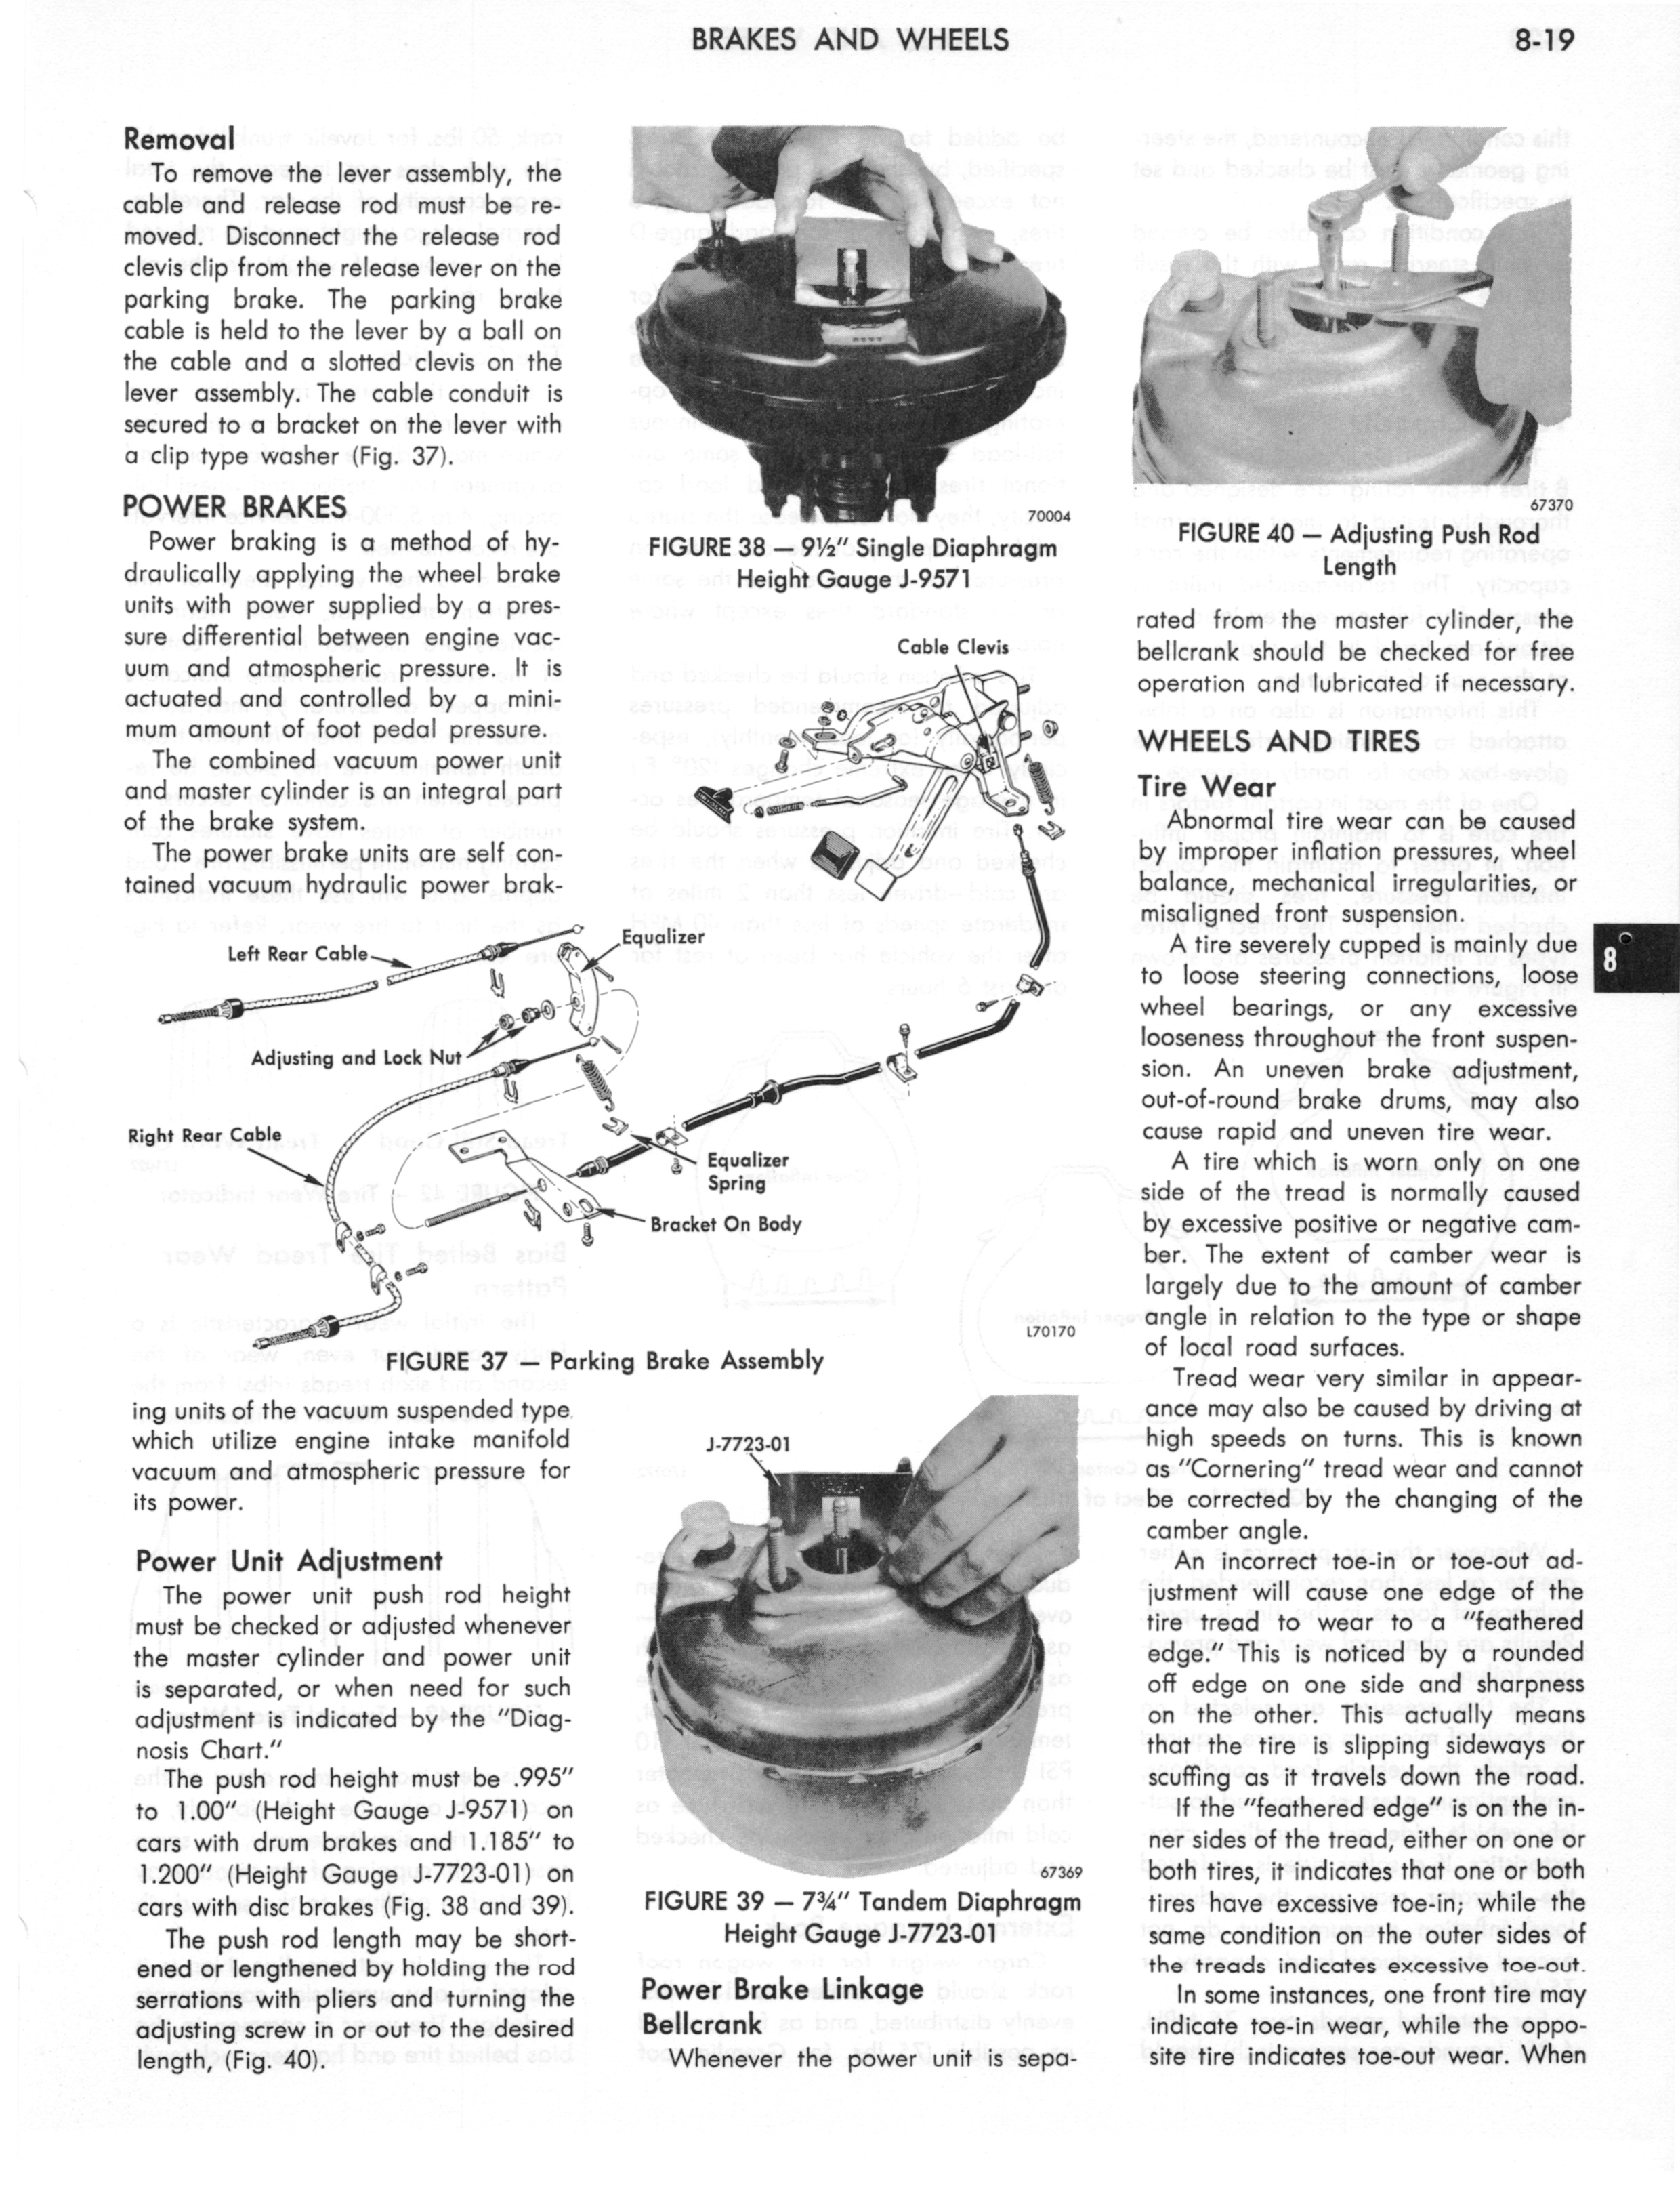 1973 AMC Technical Service Manual page 269 of 487